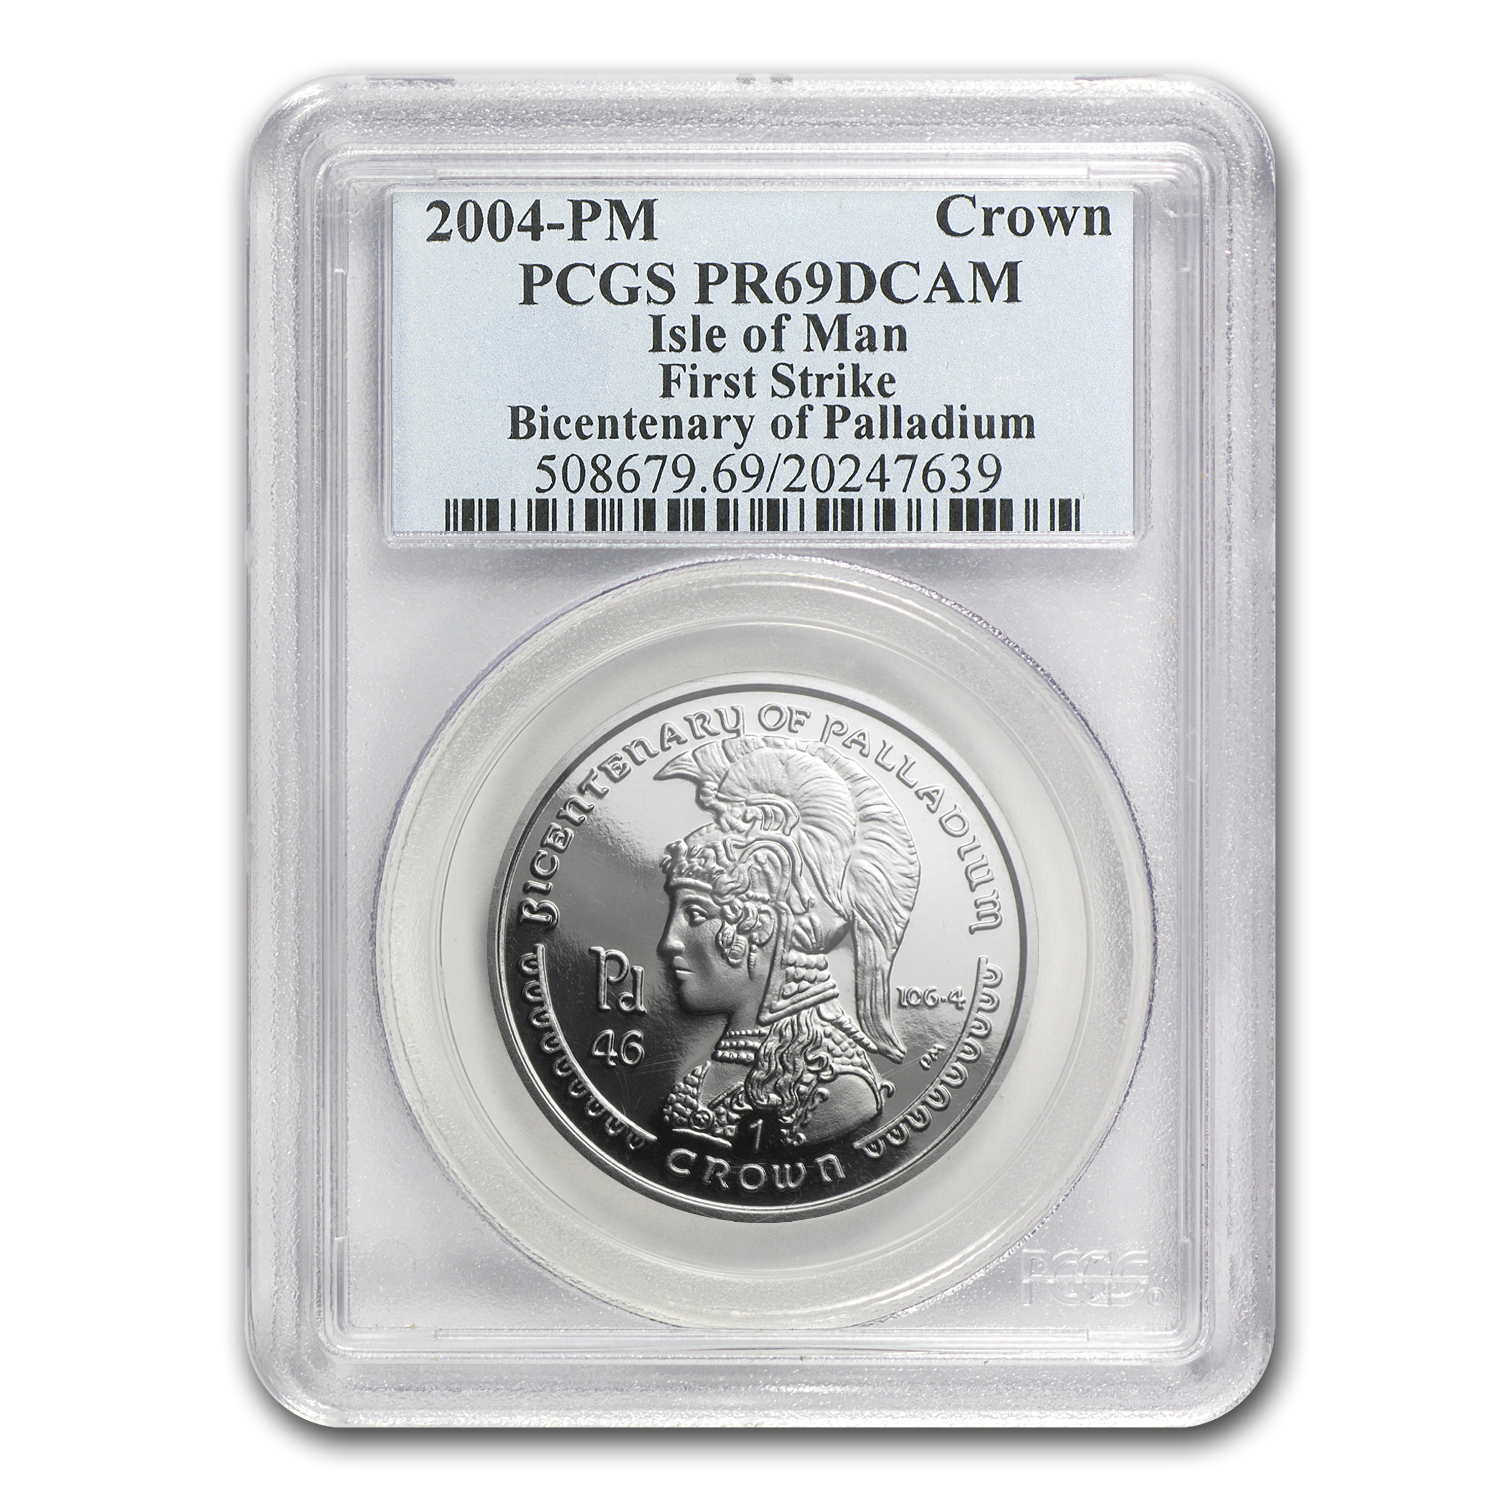 2004 Isle of Man 1 oz Palladium Crown PR-69 PCGS (1st Strike)